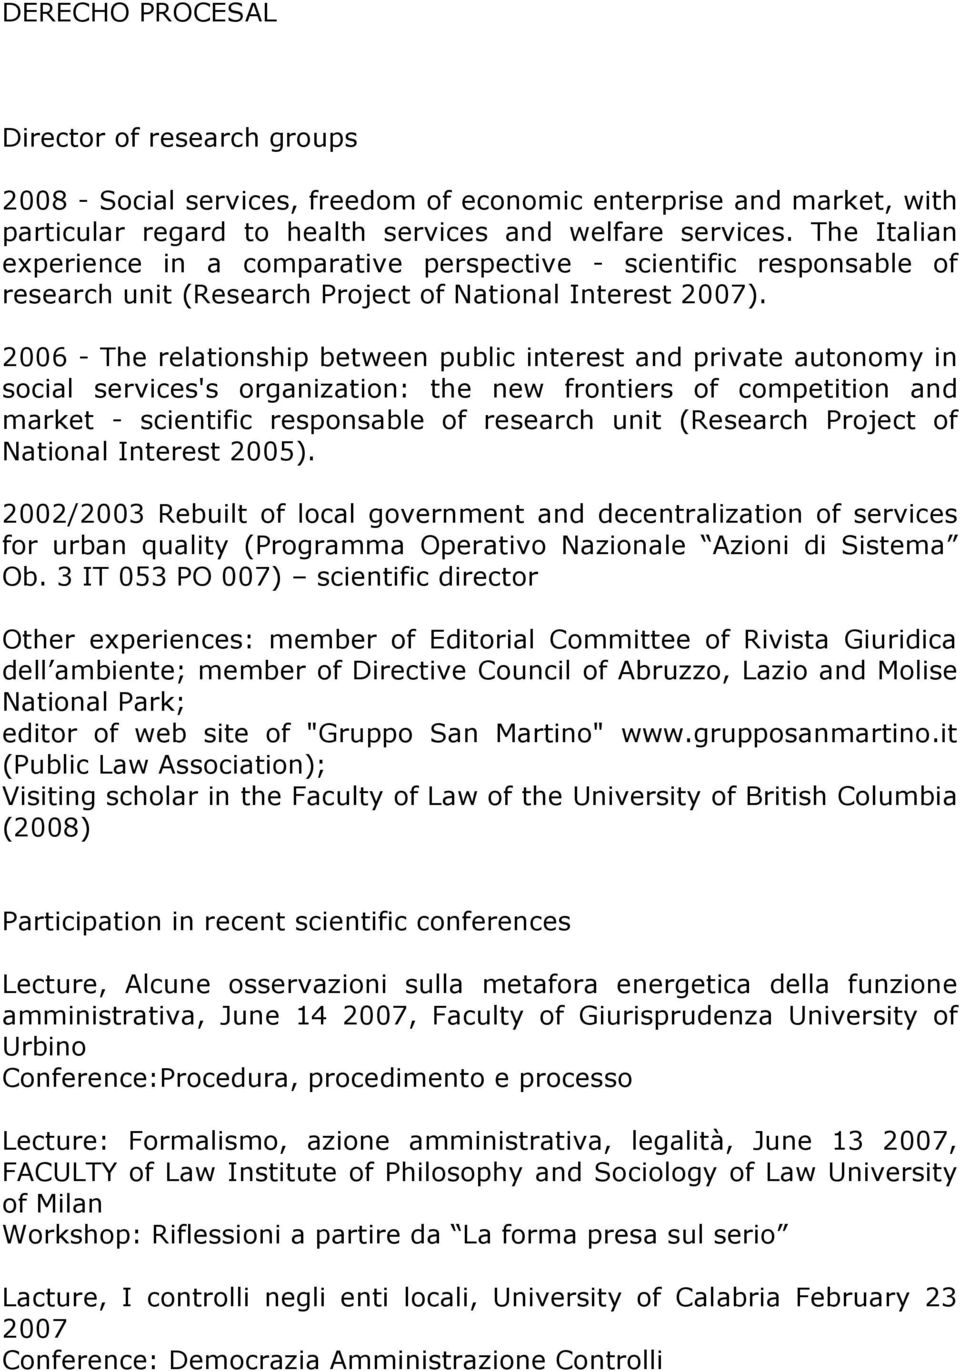 2006 - The relationship between public interest and private autonomy in social services's organization: the new frontiers of competition and market - scientific responsable of research unit (Research